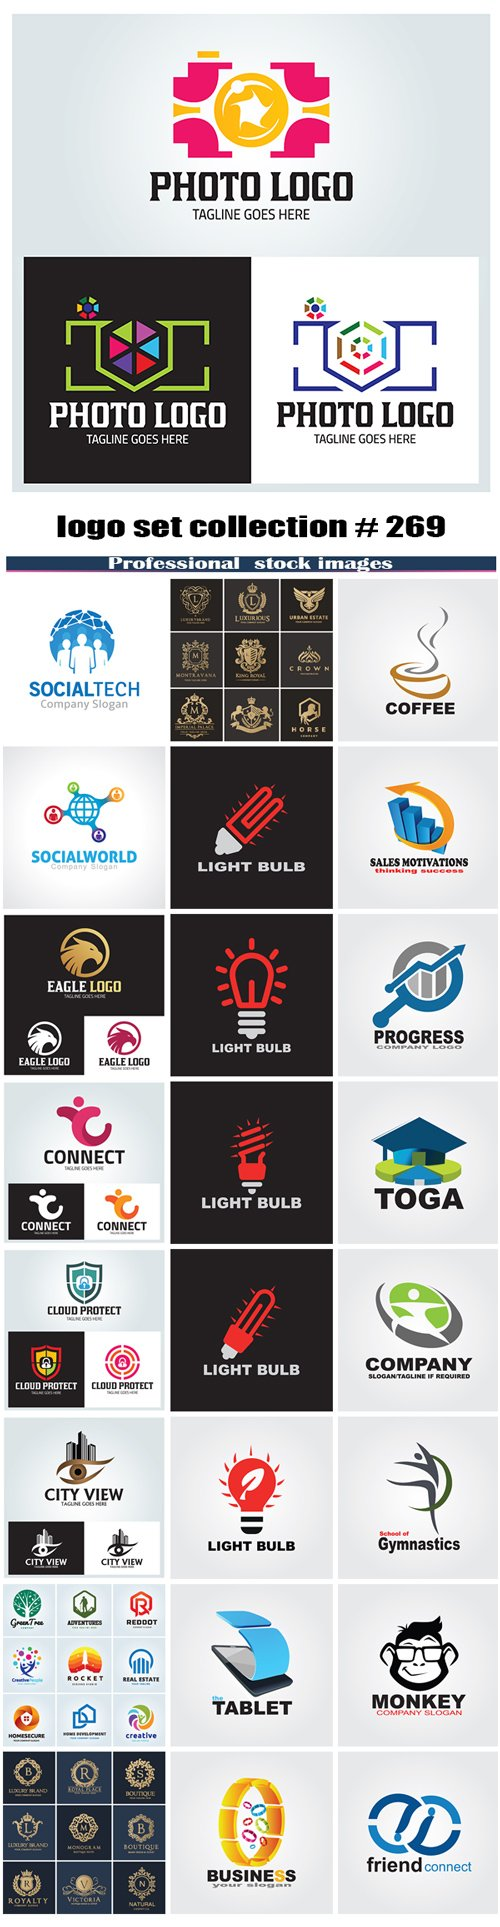 logo set collection # 269